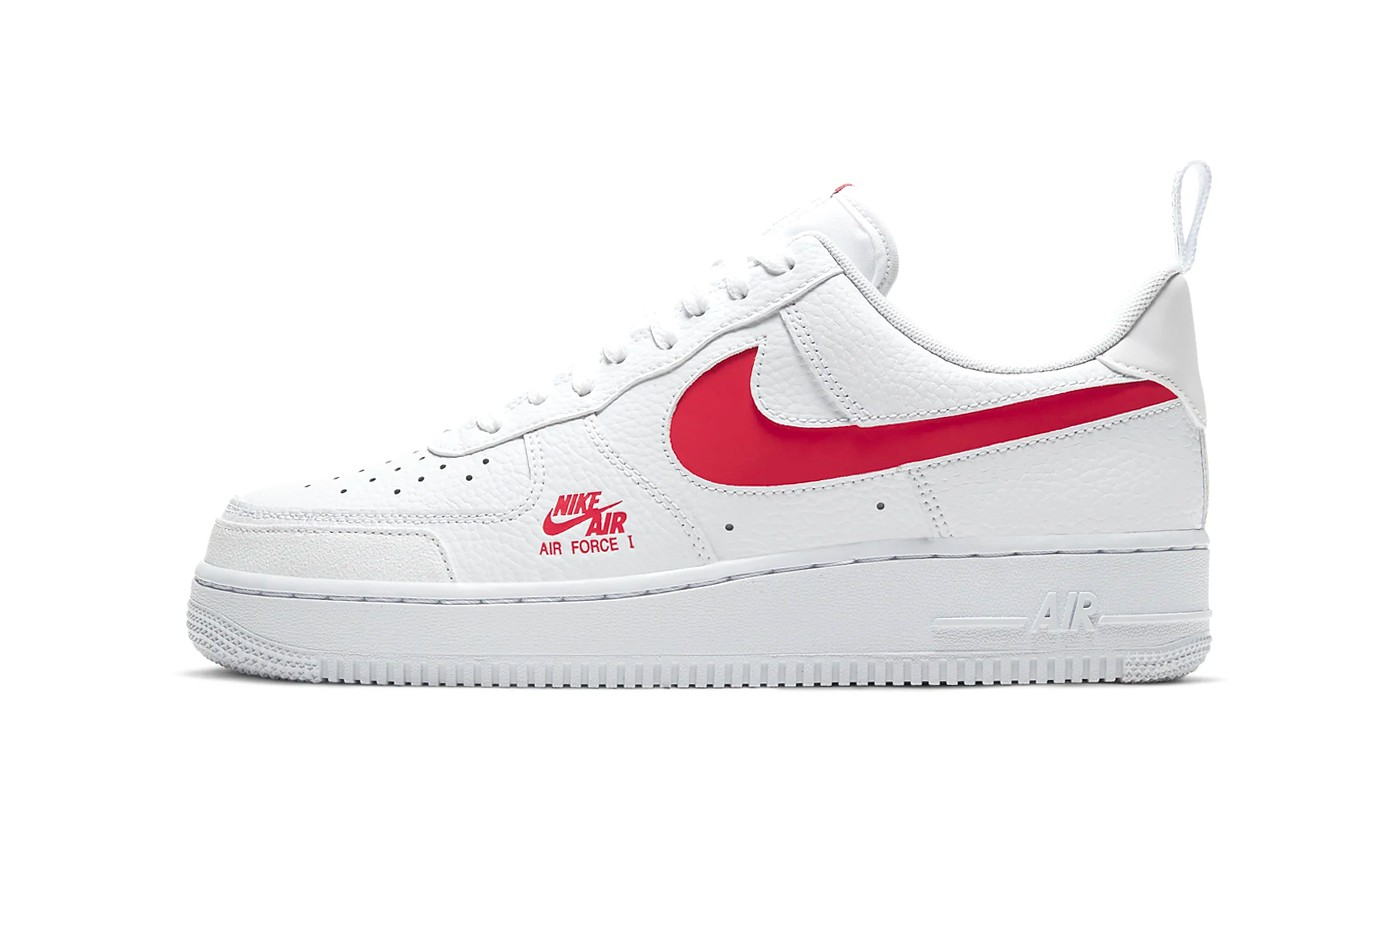 air force 1 lv8 utility release date